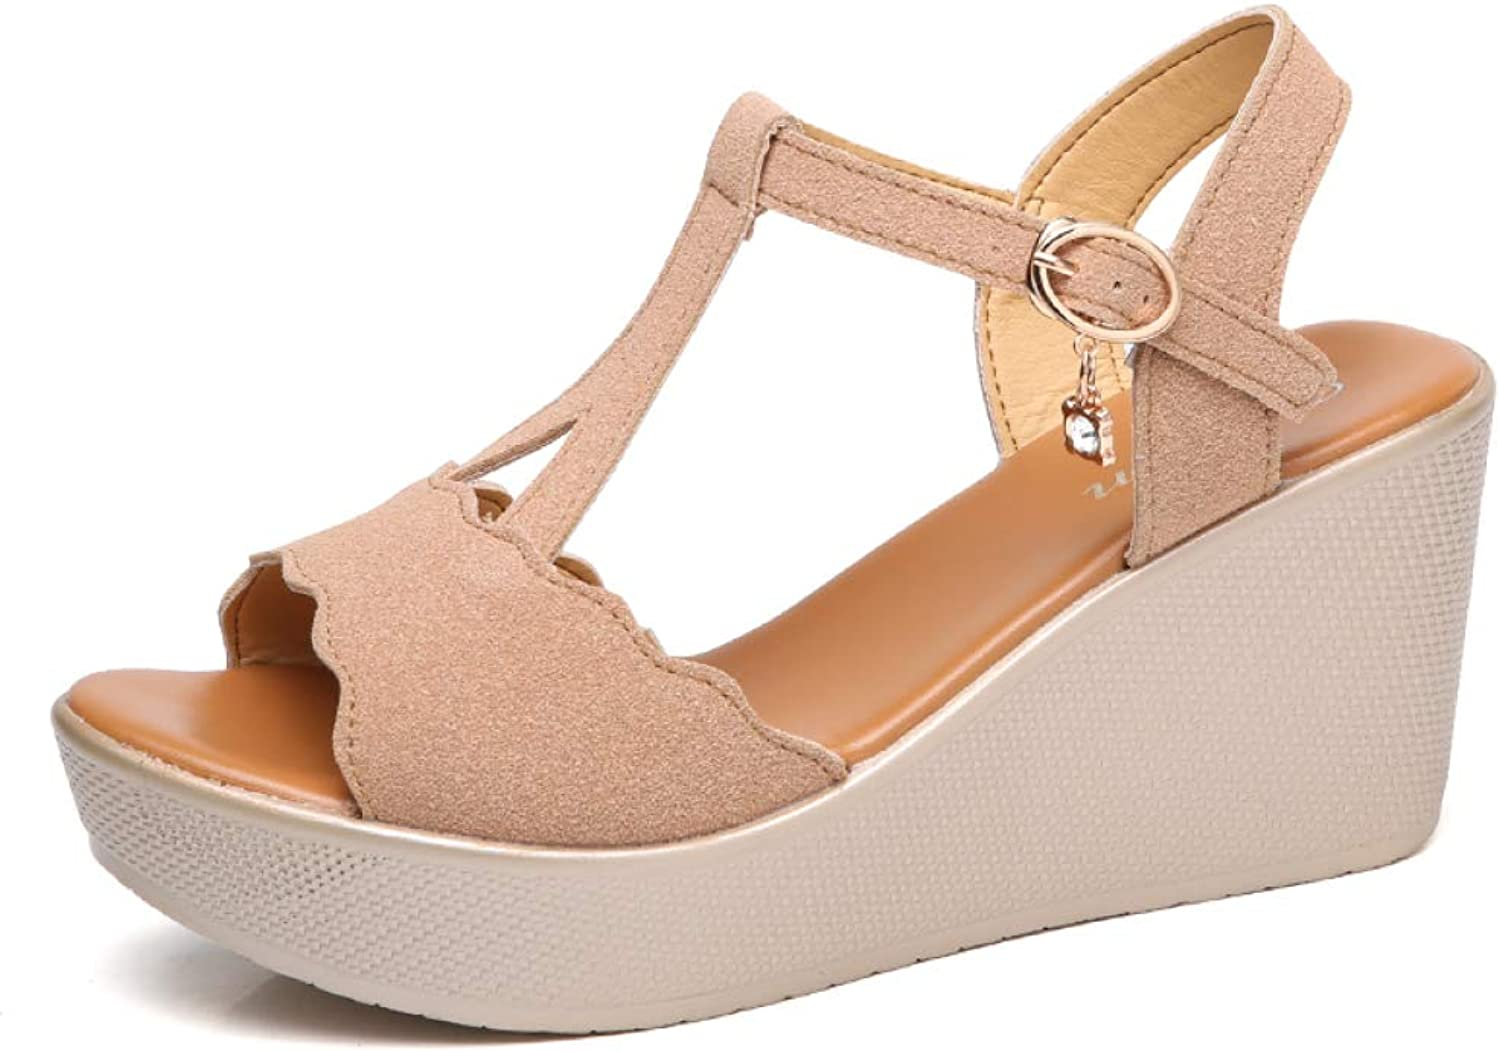 T-JULY Sandals for Women Wedges shoes Woman High Heel Sandals Female Casual shoes Ladies Sandal Sexy Summer